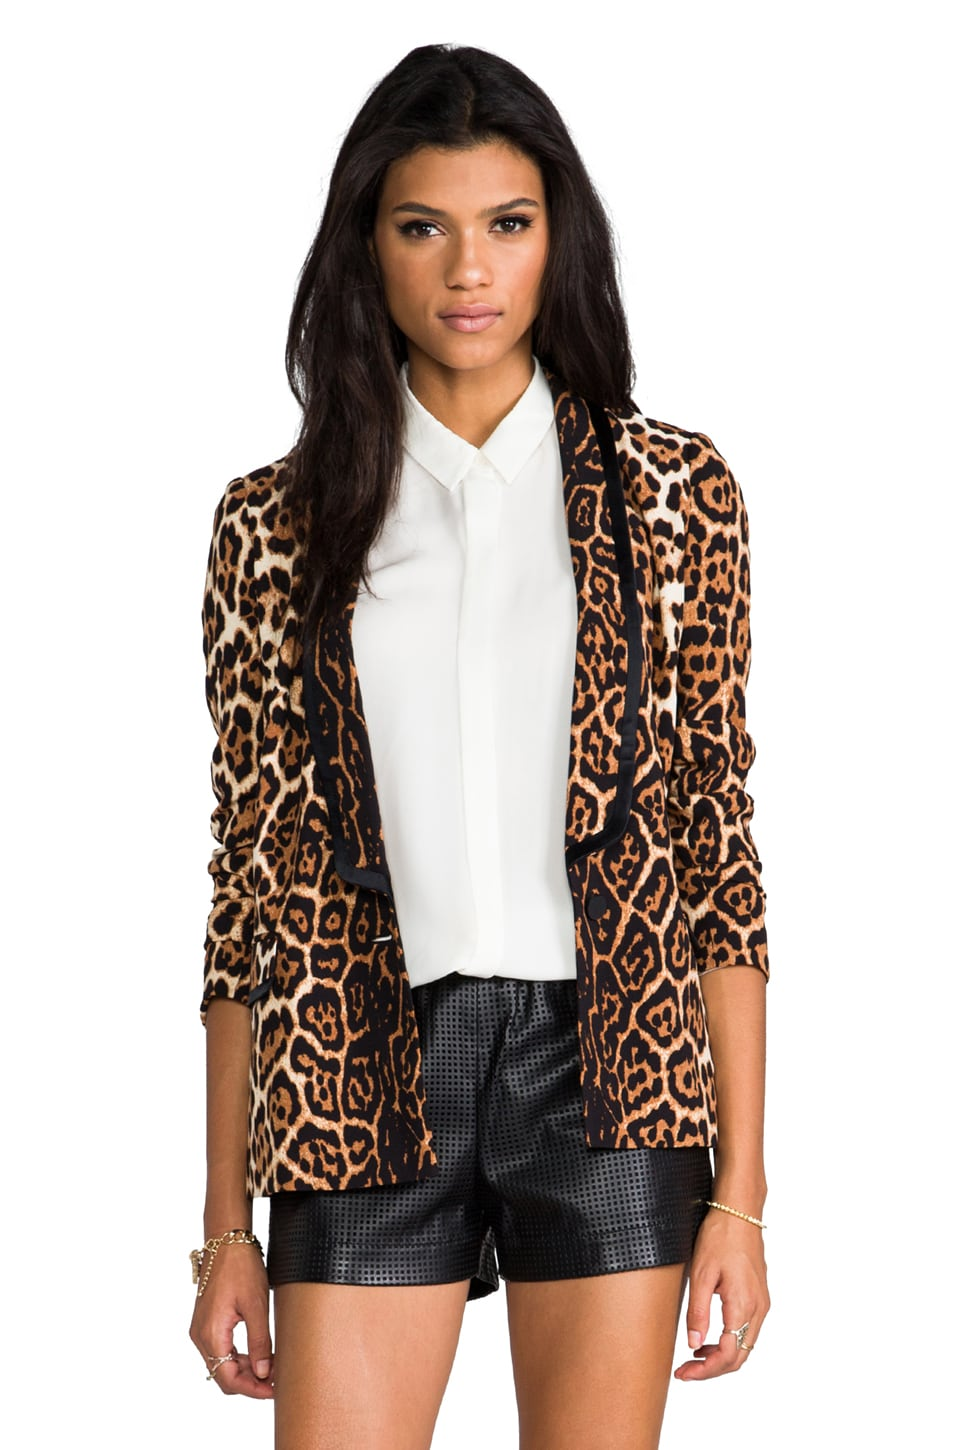 Juicy Couture Flowing Leopard Blazer in Ginger Flowing